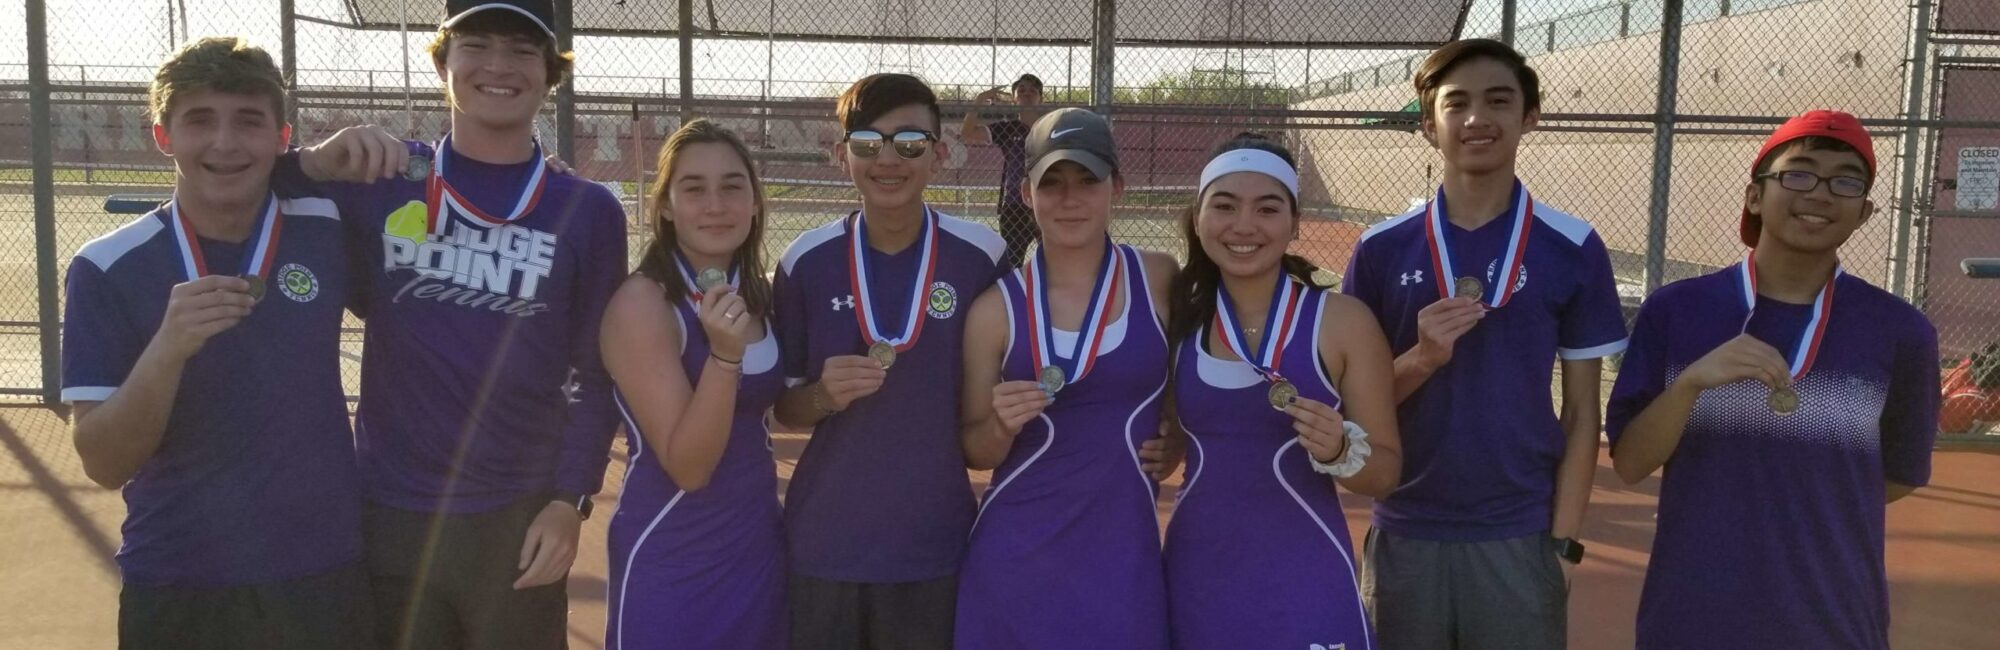 Ridge Point Tennis